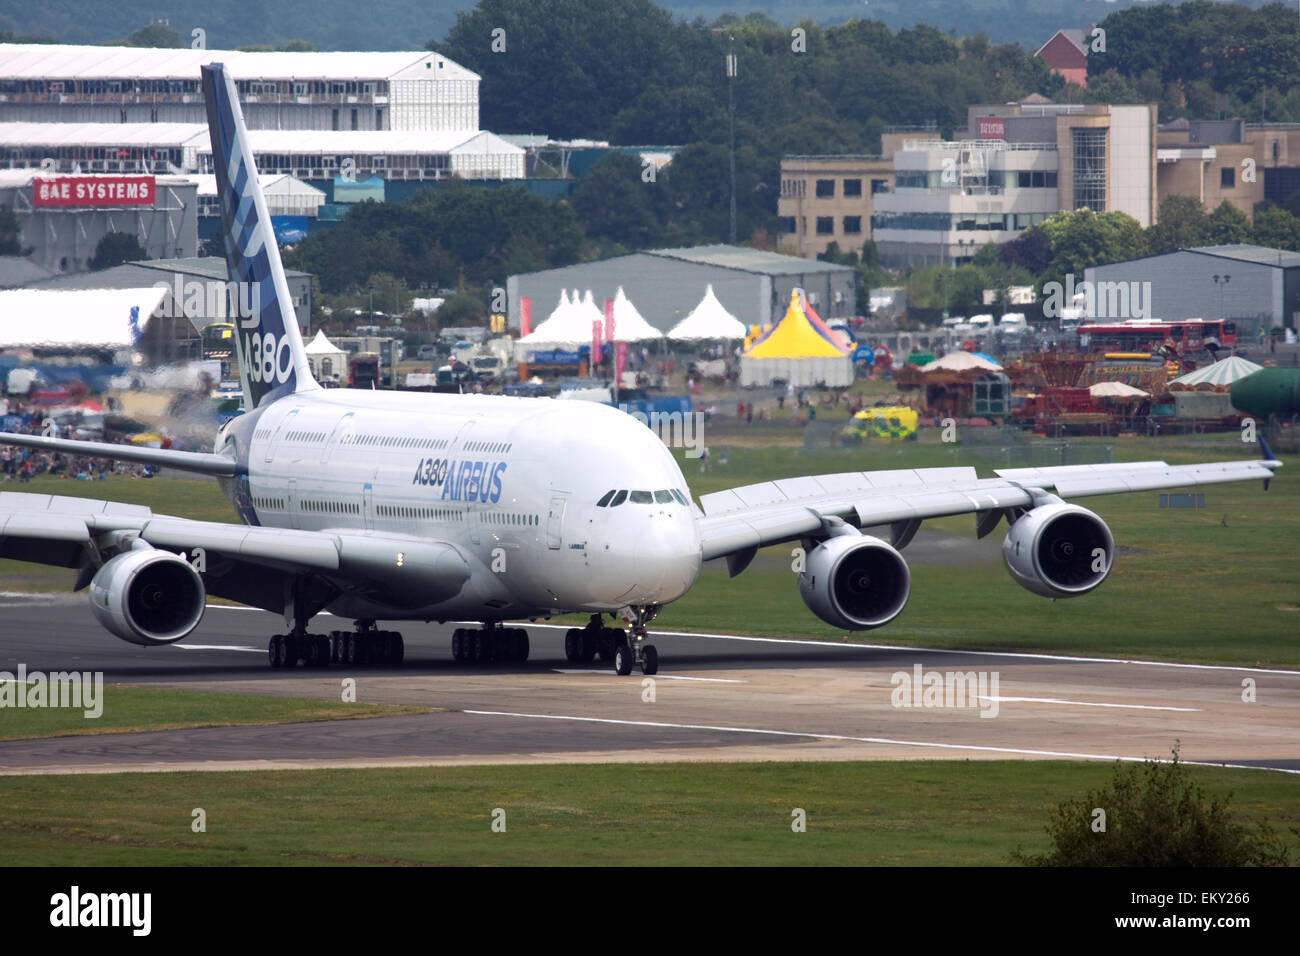 Airbus A380 at Farnborough International Airshow 2015 Stock Photo